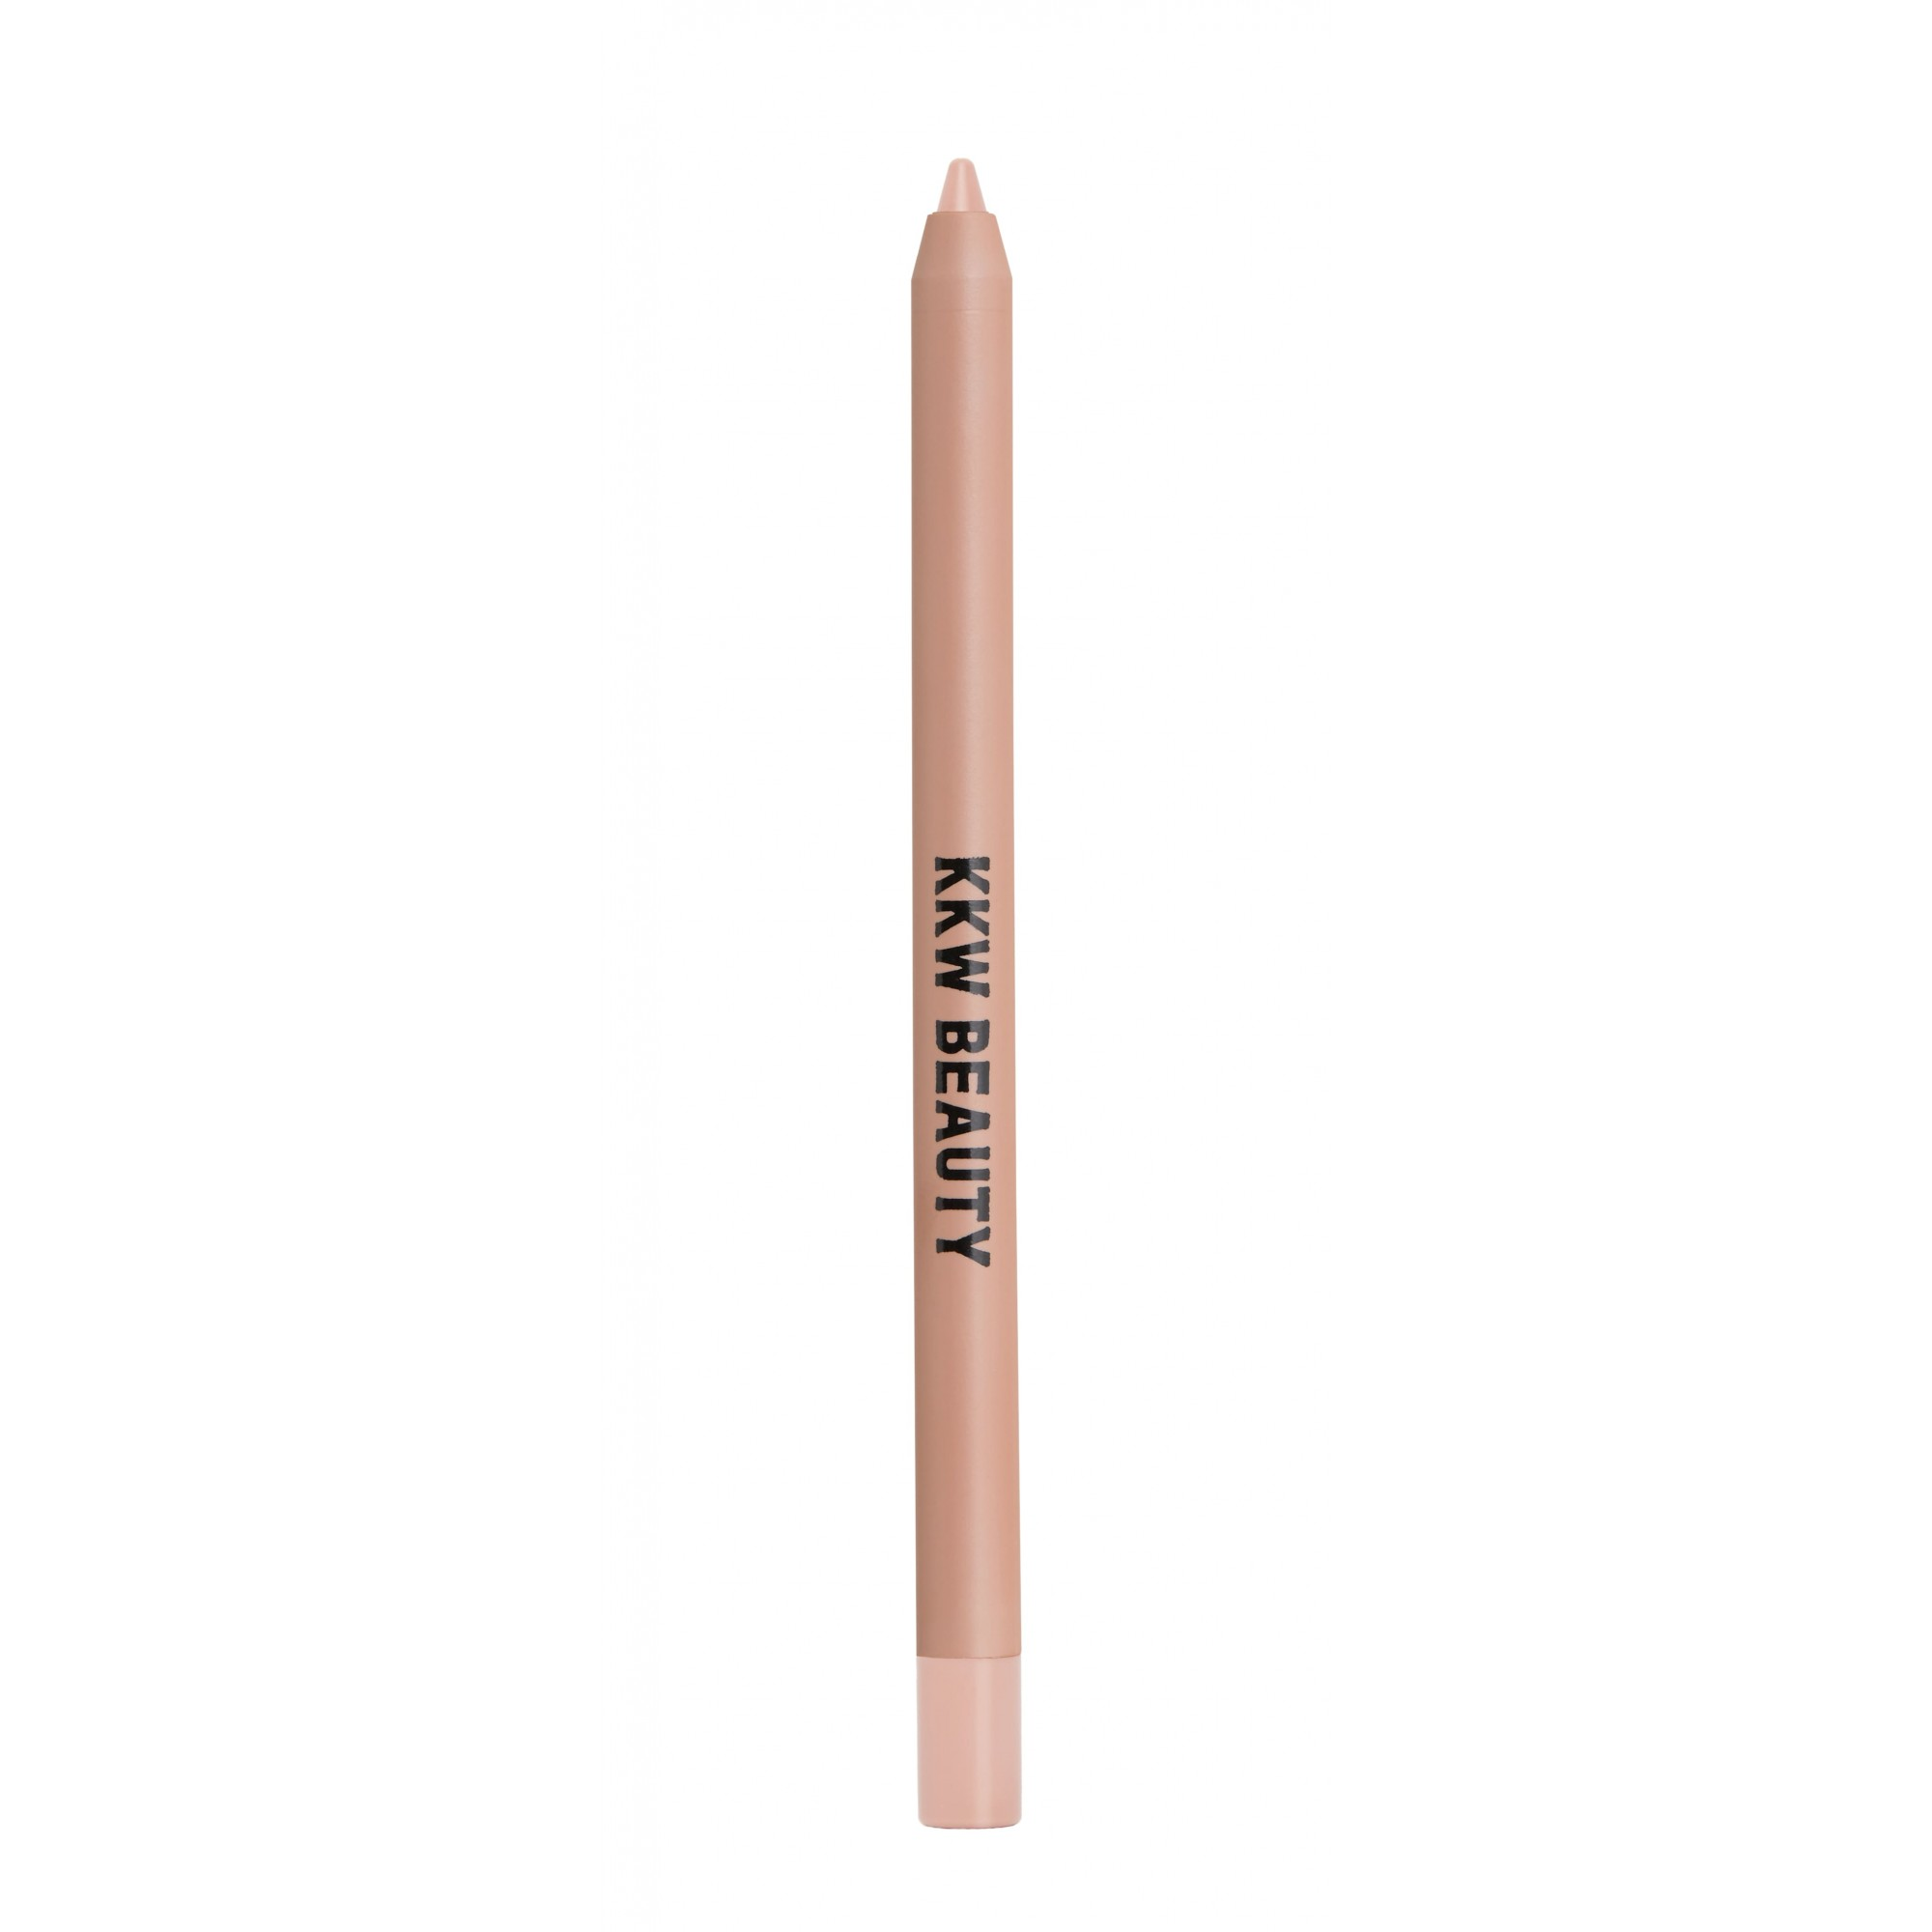 KKW Beauty Nude Crème Lip Liner Nude 0 - Muted beige